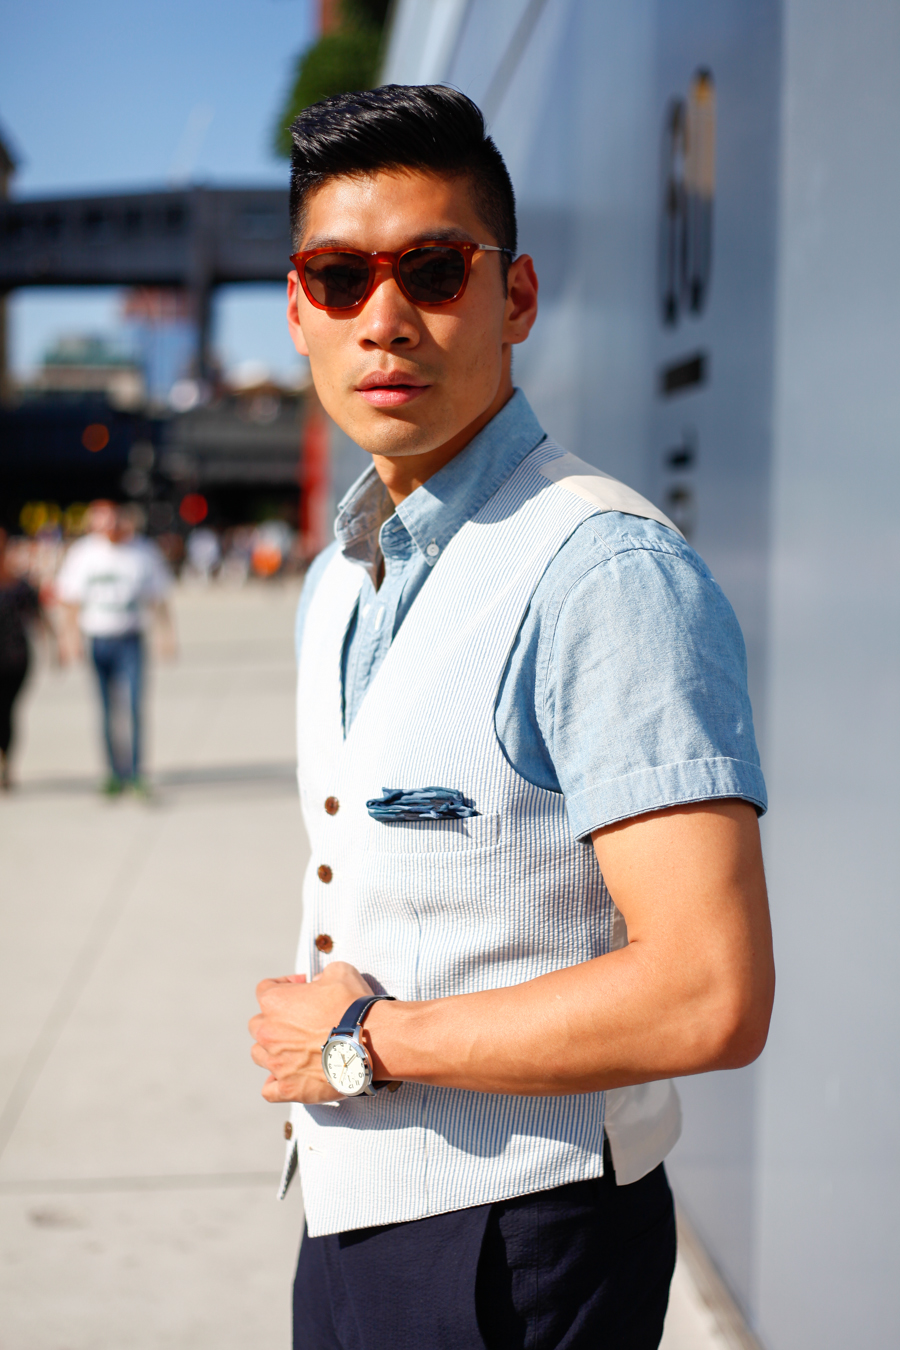 TOMS x Levitate Style NYFWM | Summer Style feat. TOMS sunglasses & Brogues